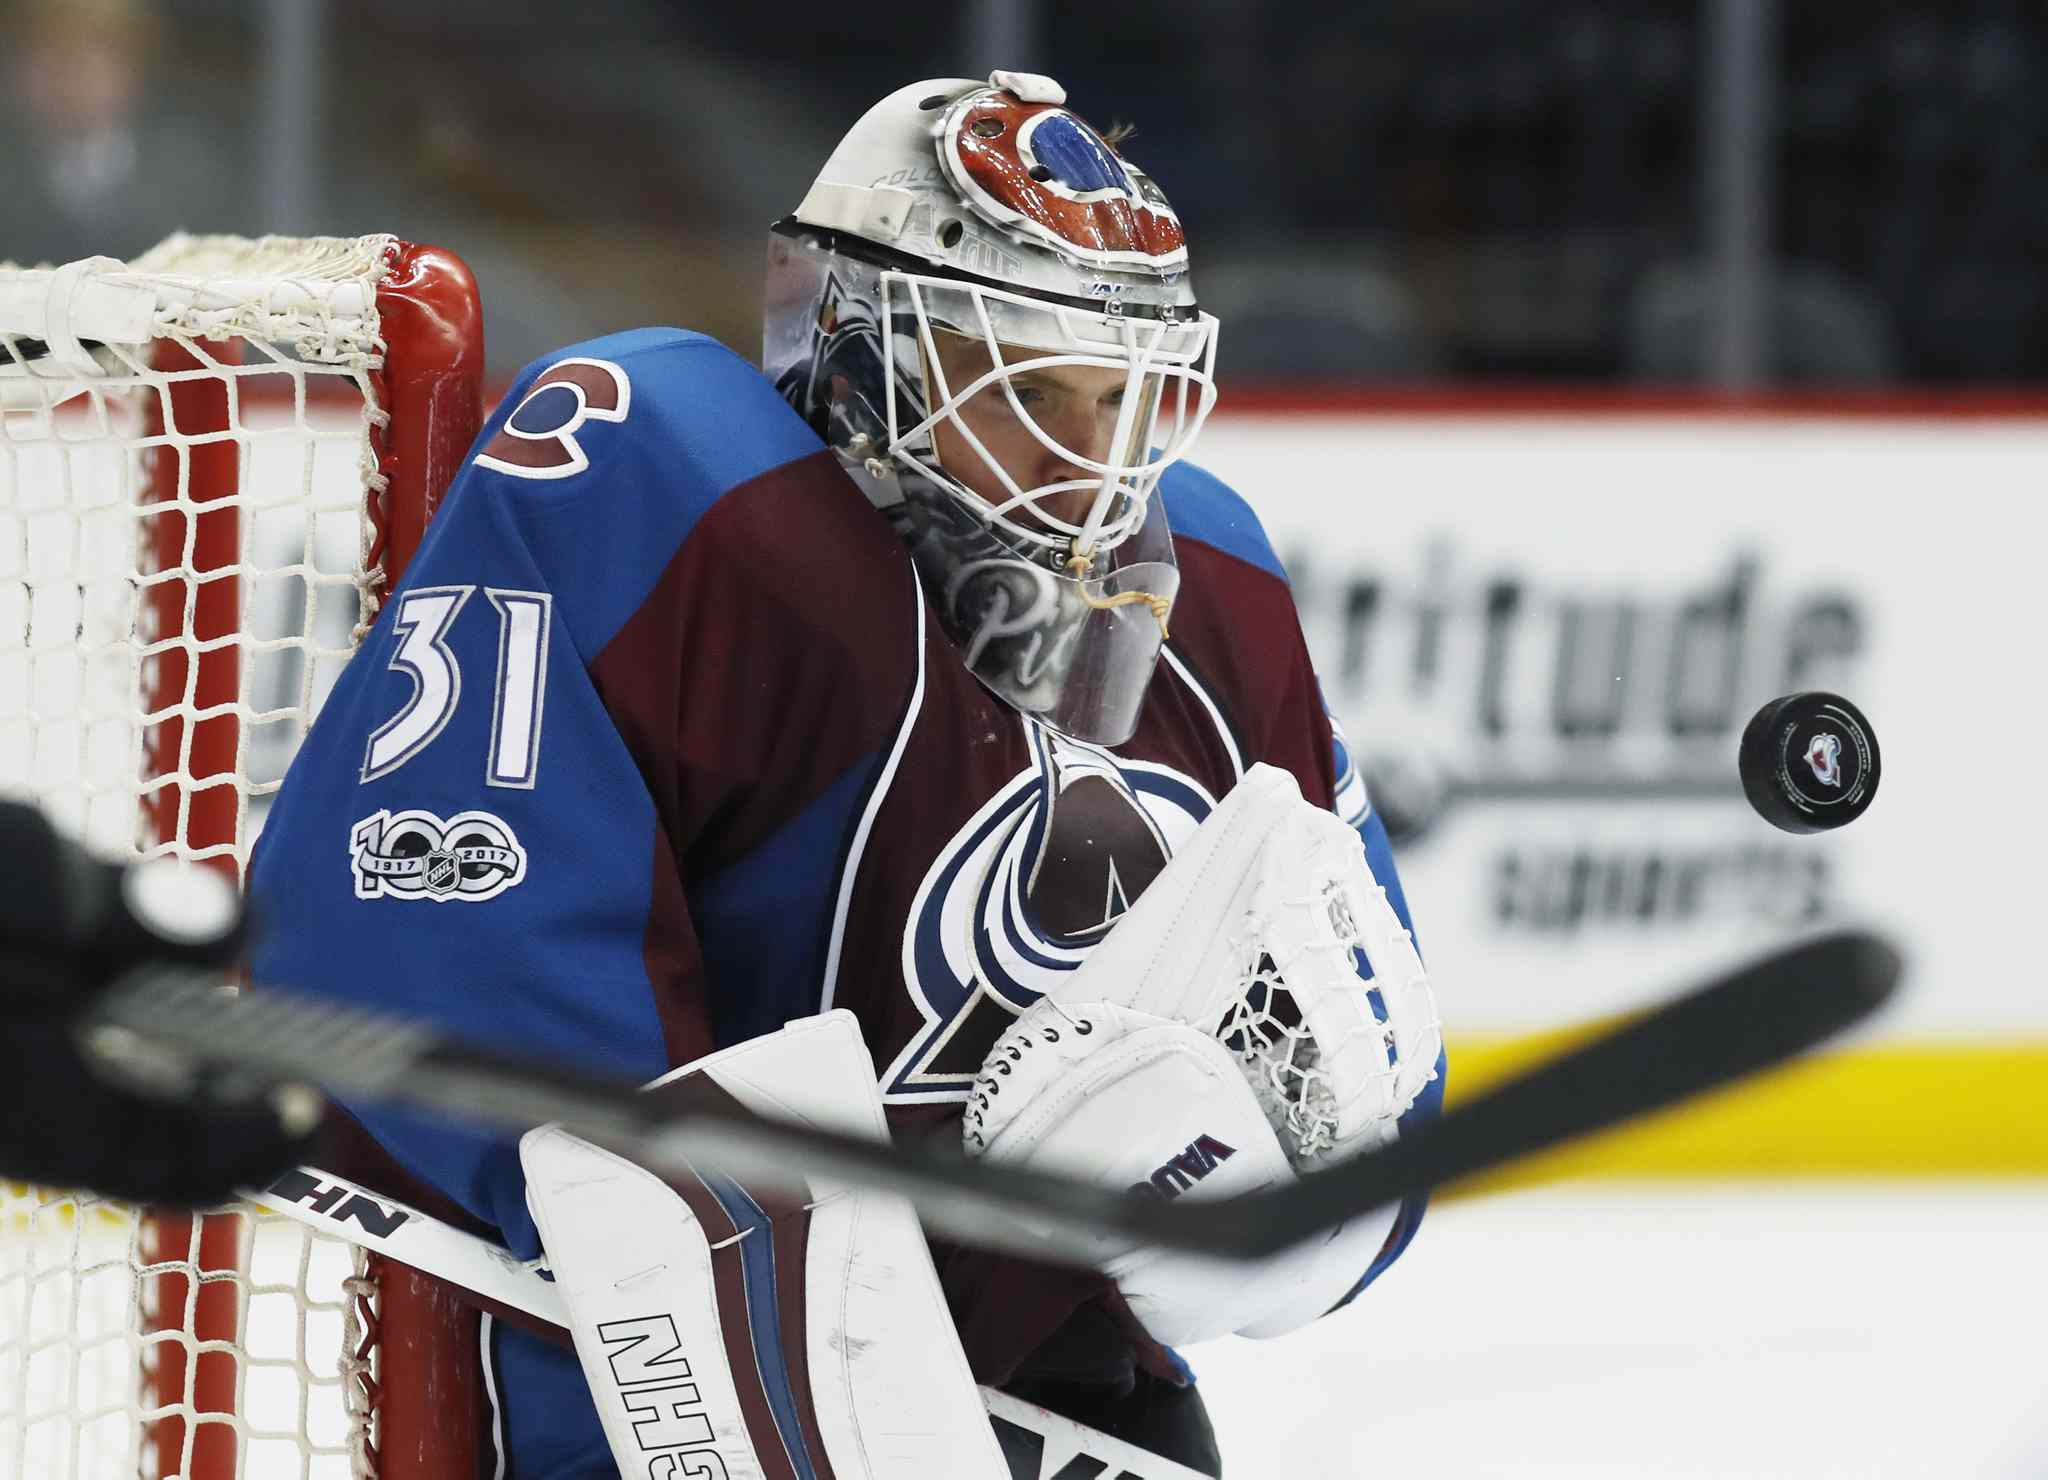 Colorado Avalanche goalie Calvin Pickard watches the puck bounce off his chest after stopping a shot against the Chicago Blackhawks in the second period of an NHL hockey game Tuesday, April 4, 2017, in Denver. (AP Photo/David Zalubowski)